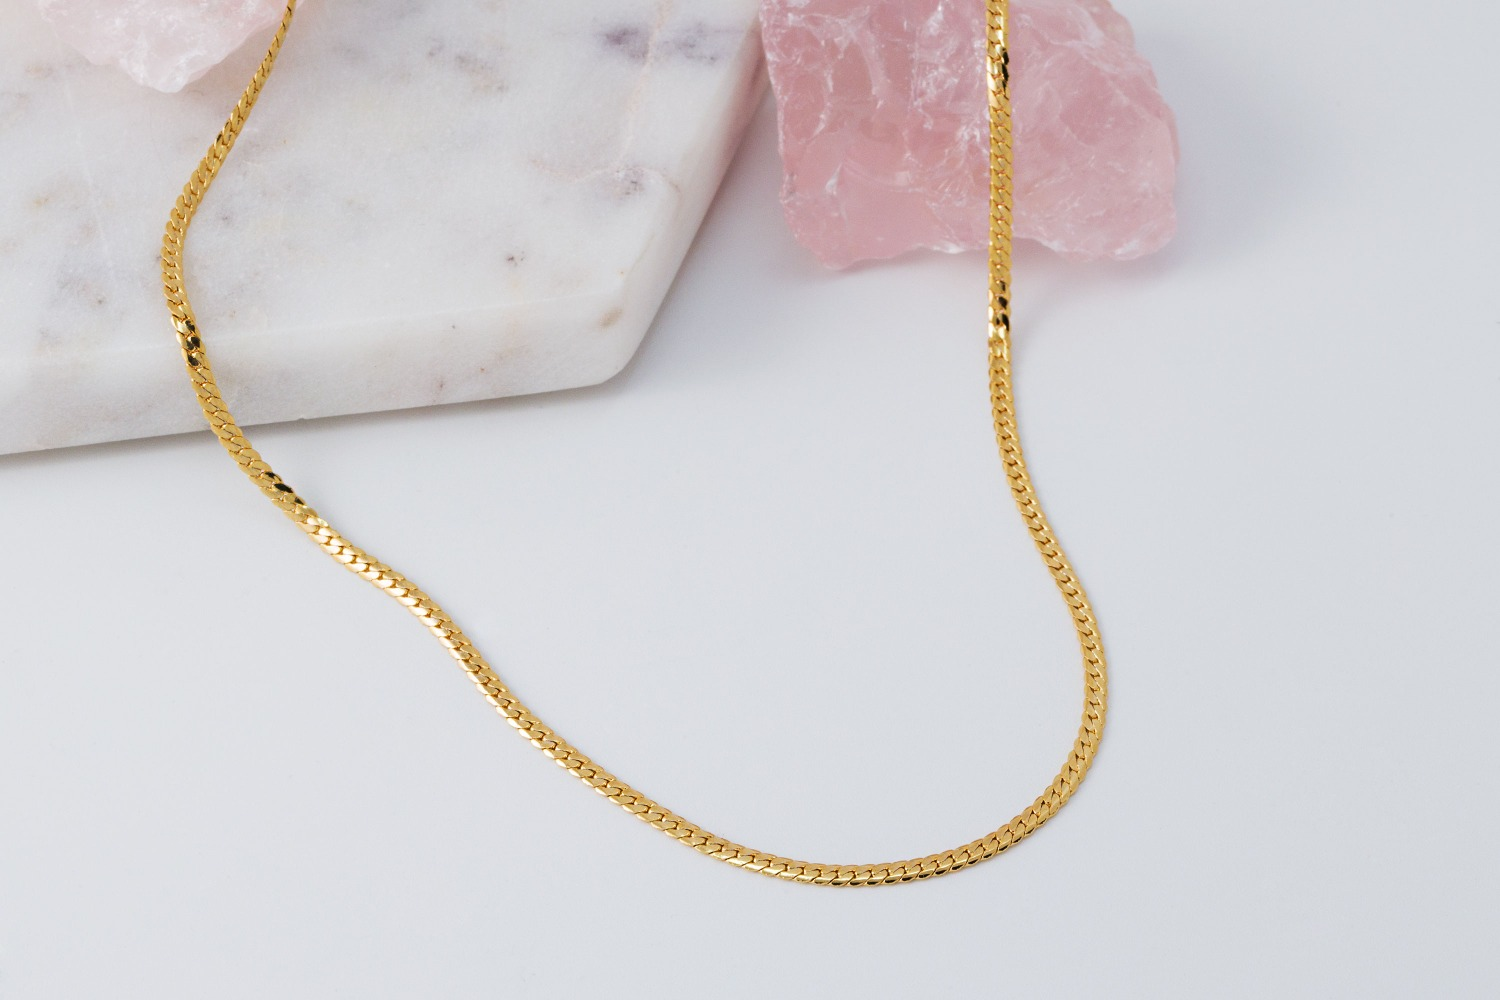 Flat chain necklace, N5114-G1